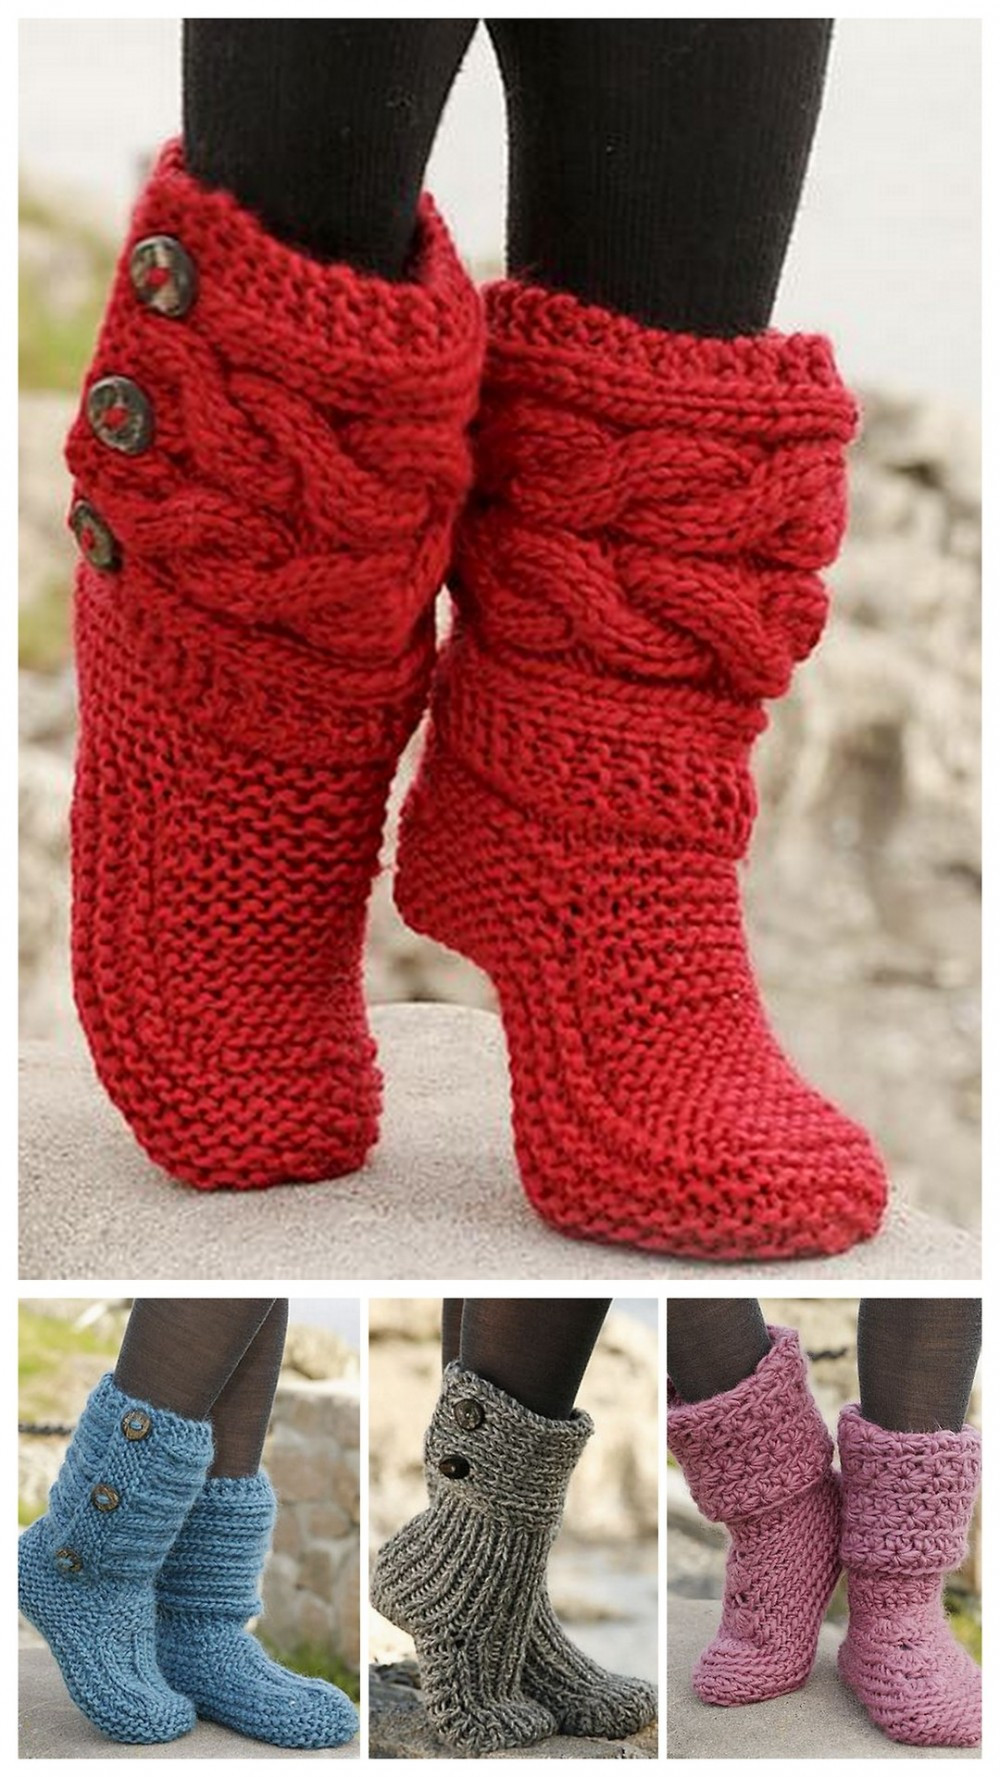 Elegant Yarn Archives Diy Christmas Crafts Knitted Slipper Boots Of Superb 41 Pics Knitted Slipper Boots